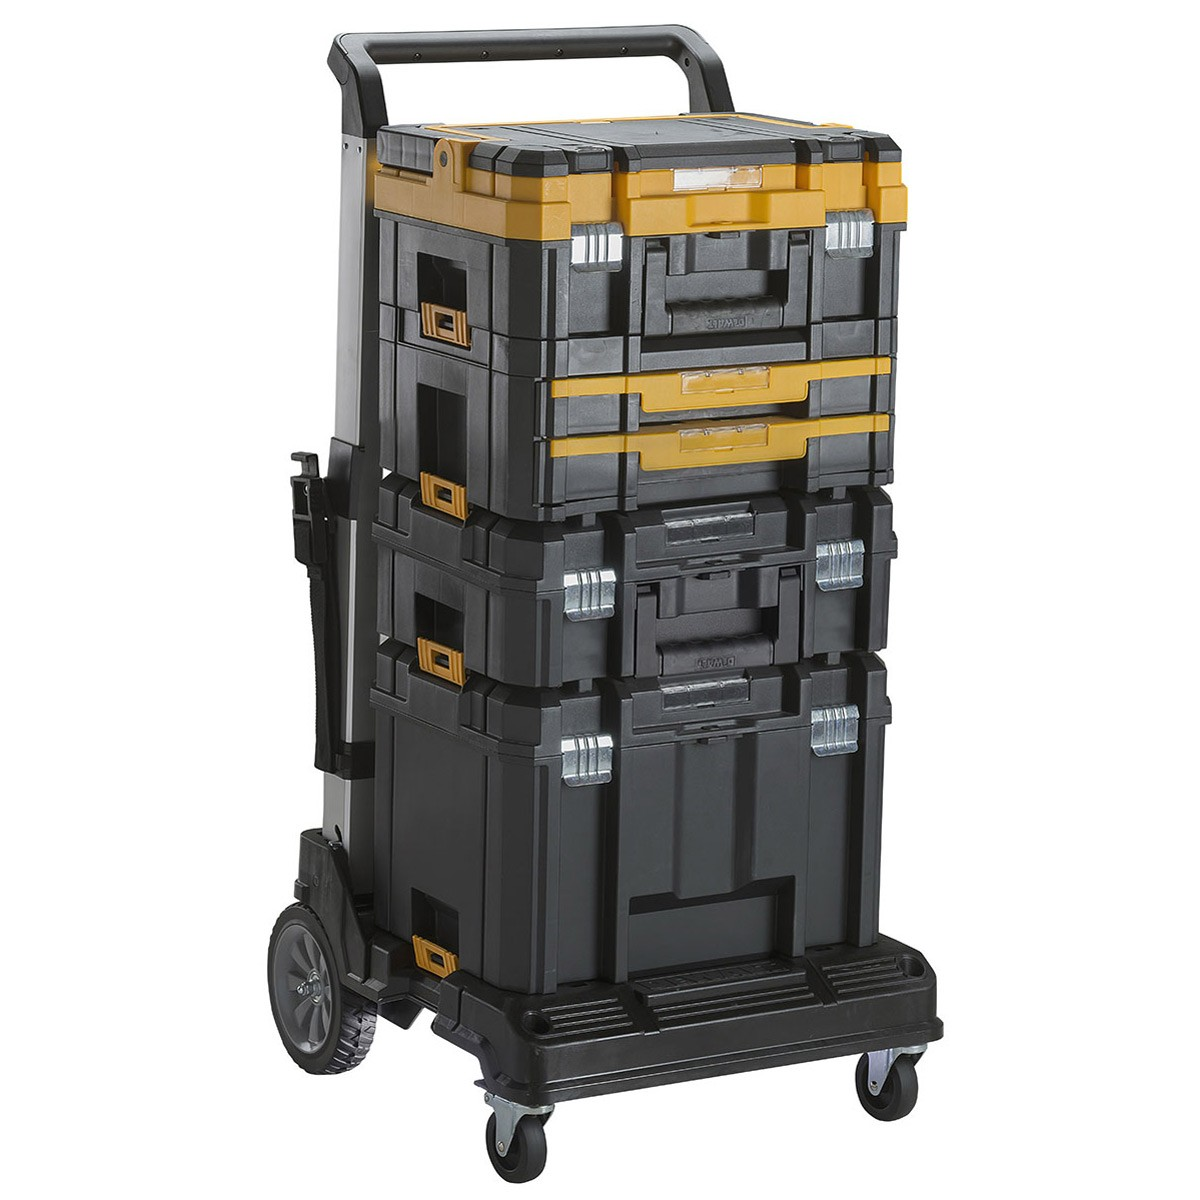 dewalt tool box on wheels. dewalt tool box on wheels